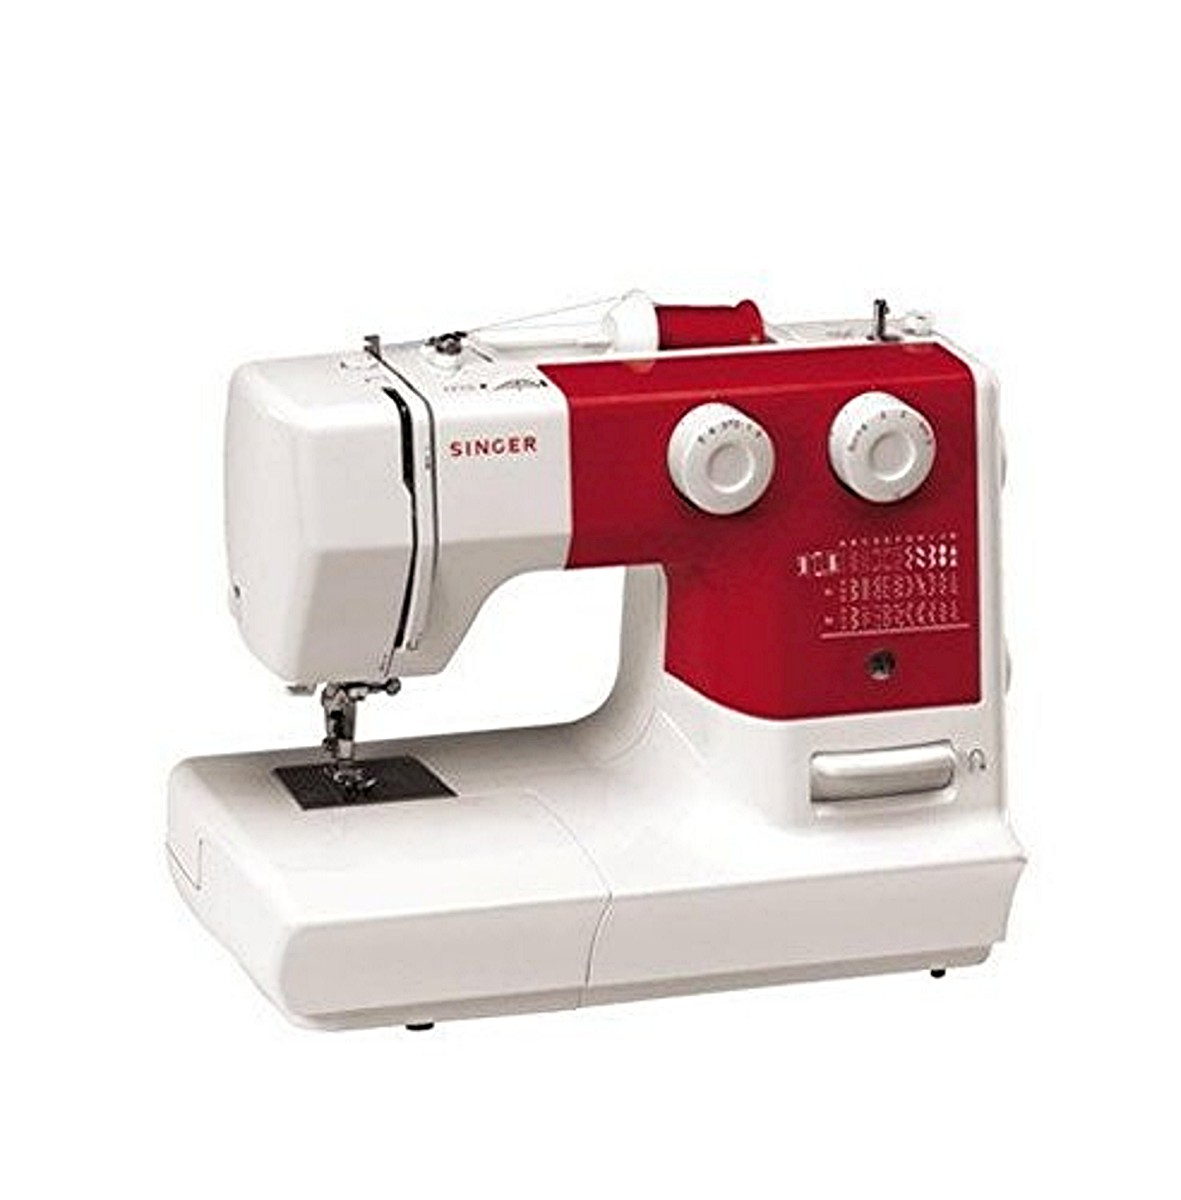 Where Can You Buy Singer Sewing Machines